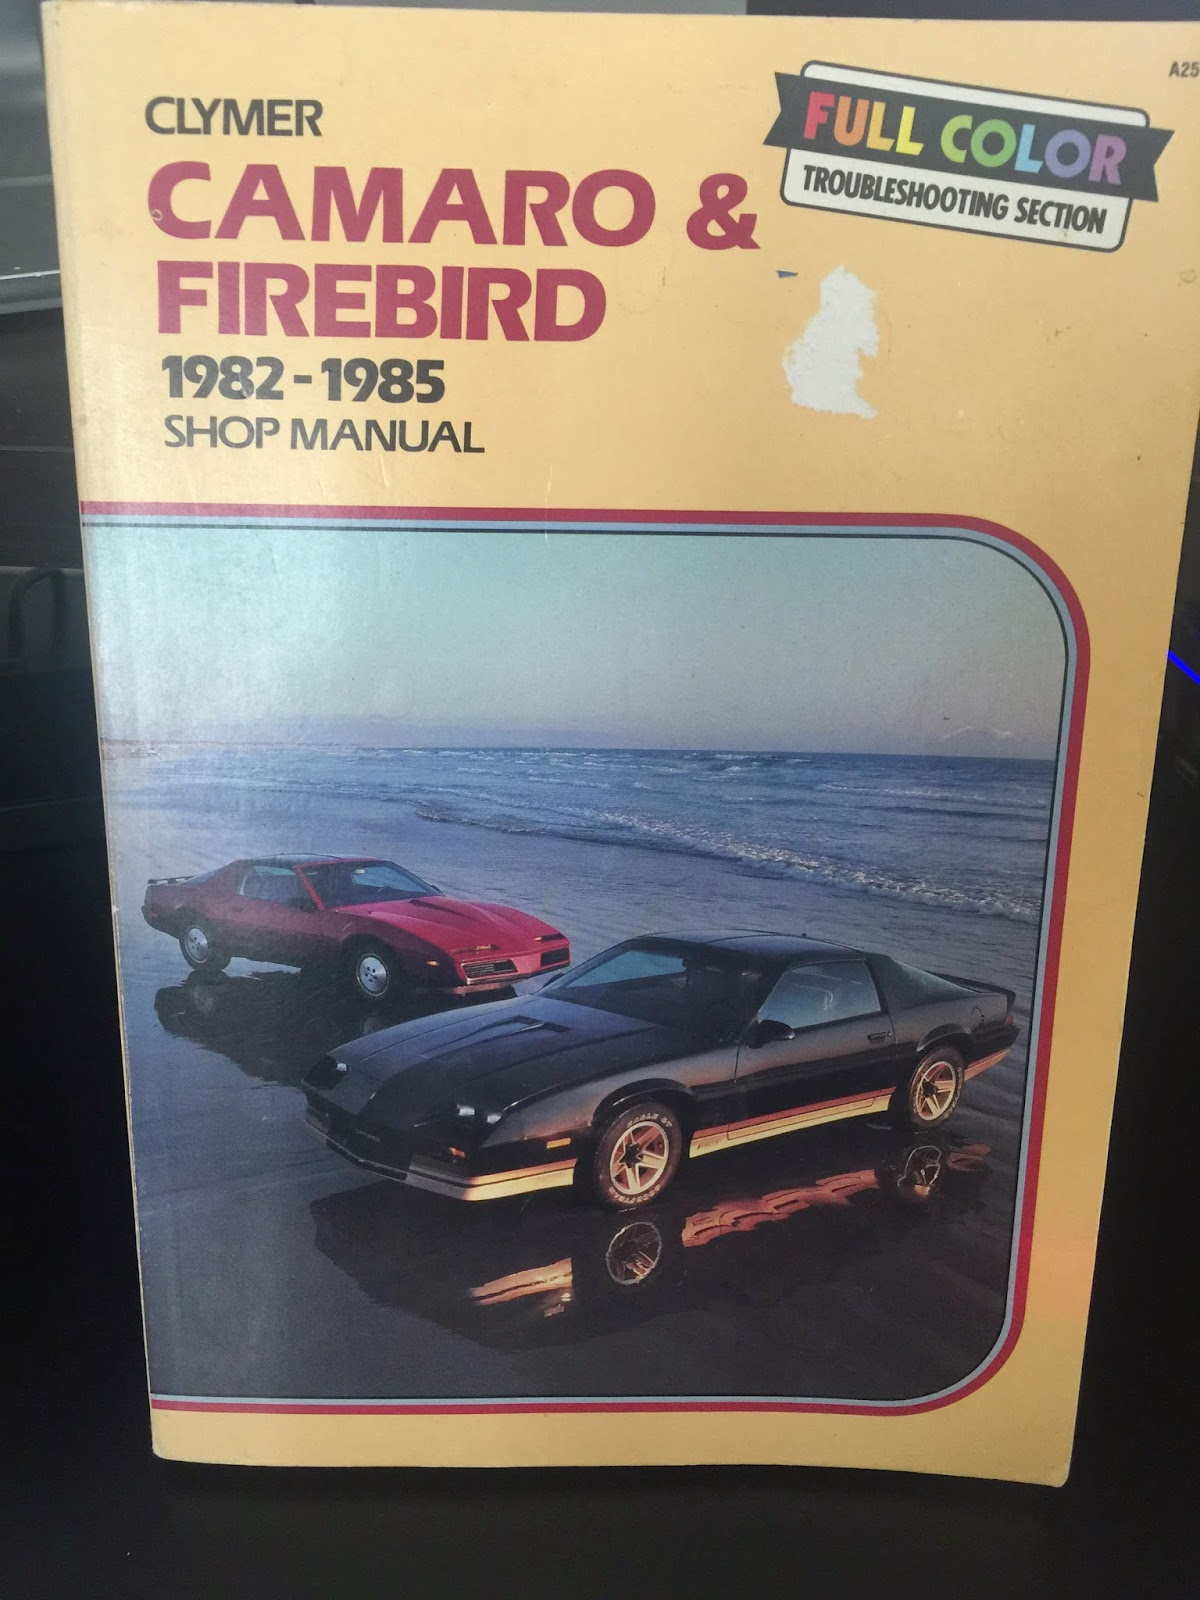 california knight rider k i t t conversion my trans am and rh smknightrider blogspot com pontiac firebird haynes repair manual for 1982 thru 1992 pdf pontiac firebird haynes repair manual for 1982 thru 1992